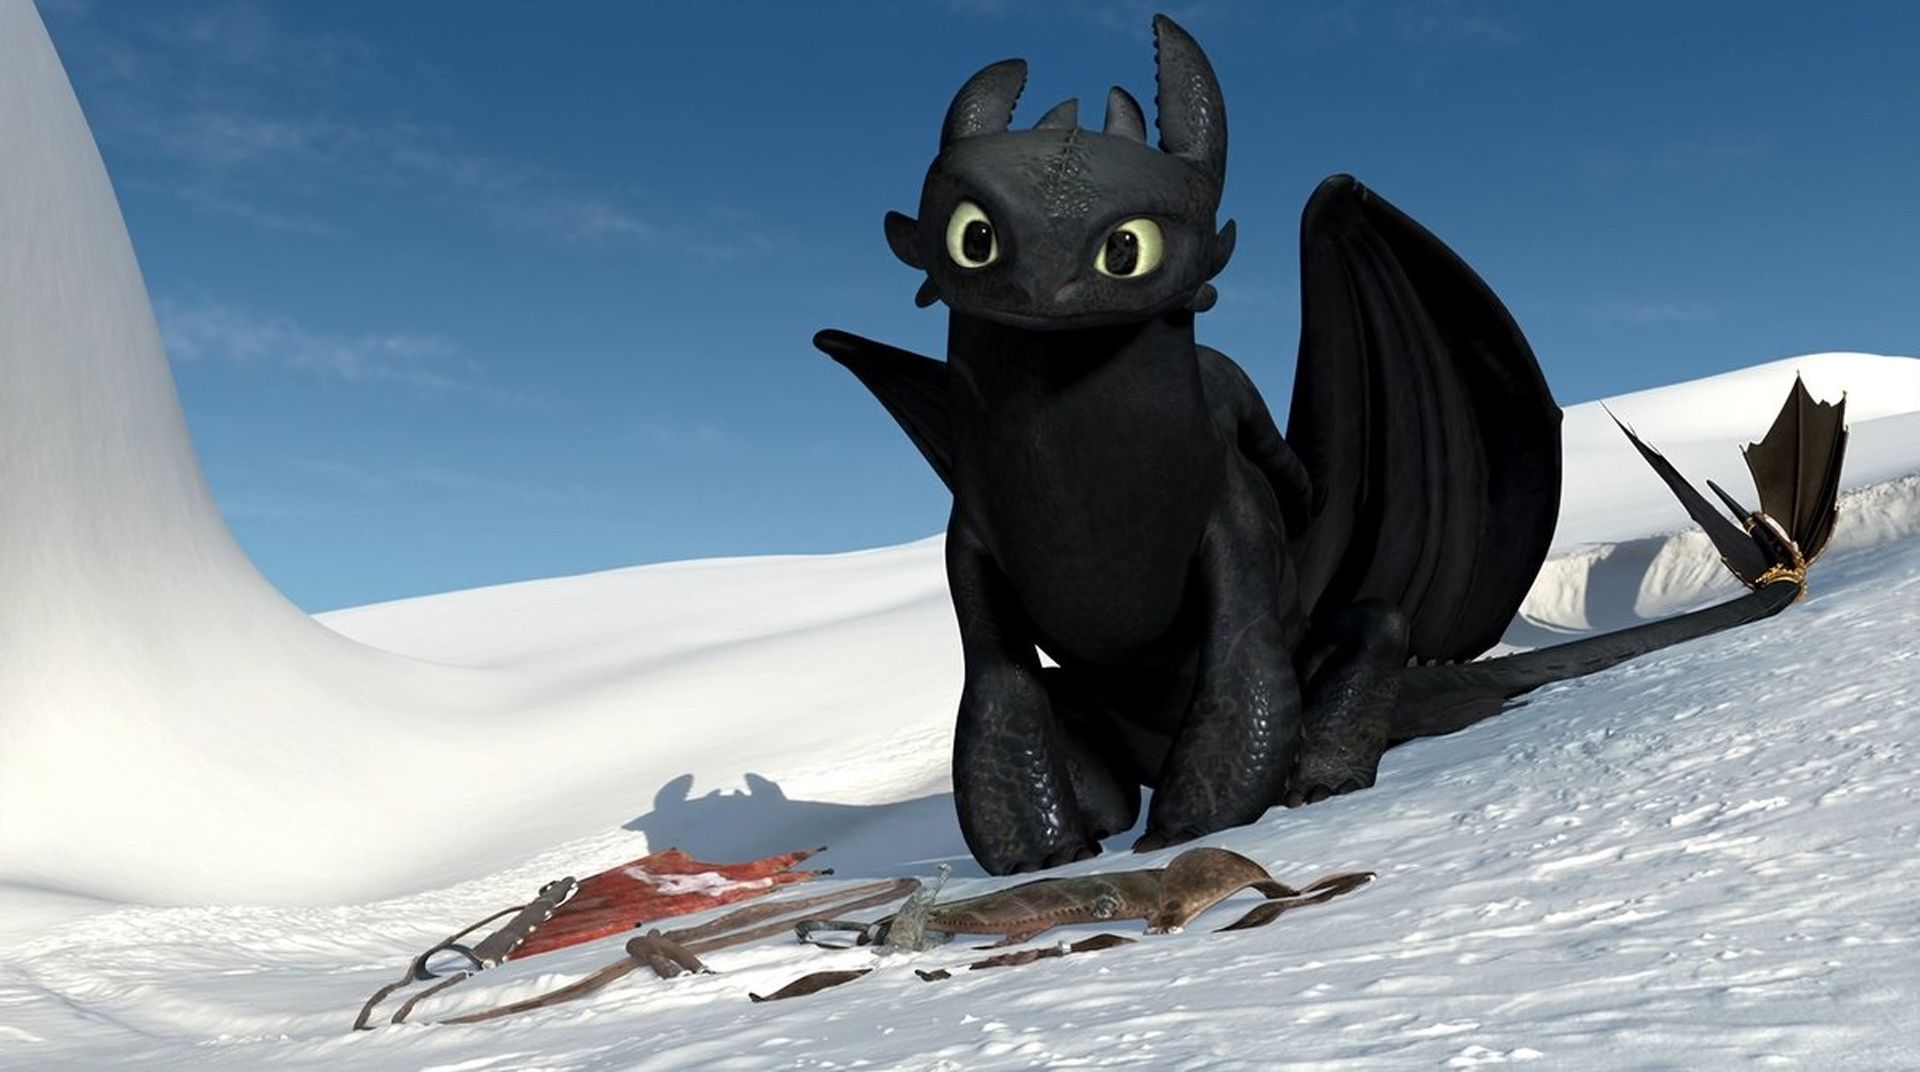 How to train your dragon wallpaper google search htyd how to train your dragon wallpaper google search ccuart Image collections